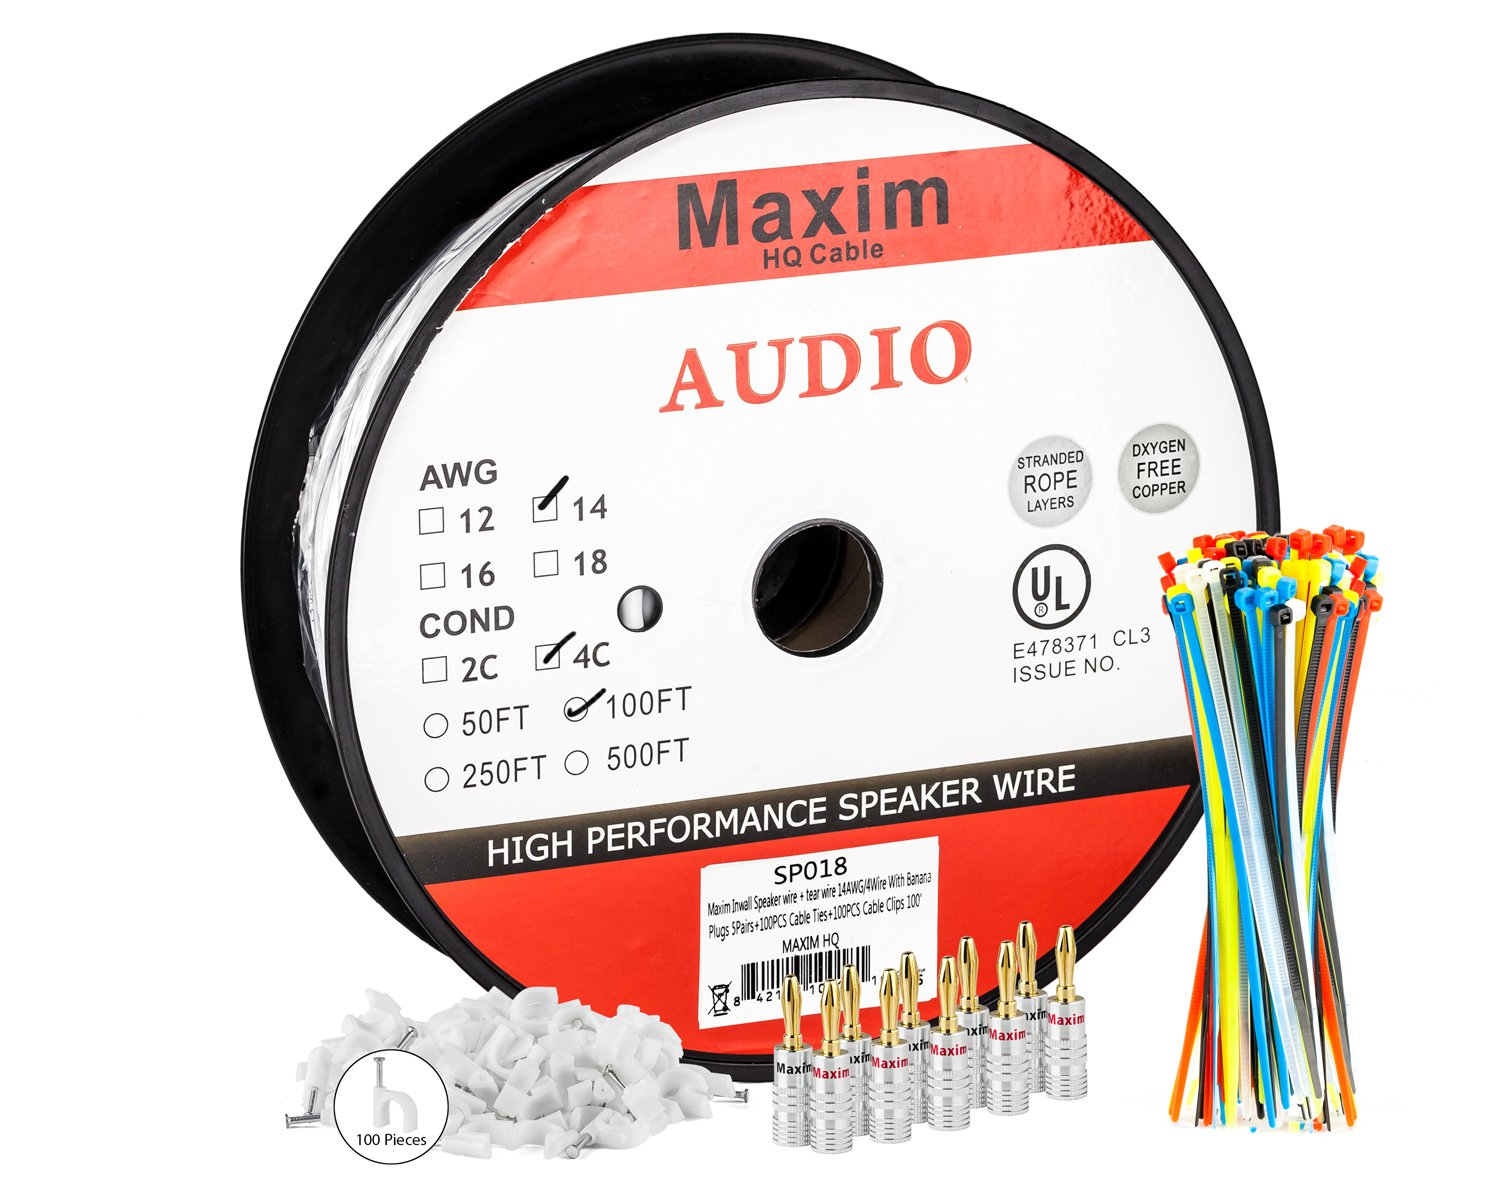 auxincl3 / 4 100 Ft LYSB01IA7R6XS-ELECTRNCS B01IA7R6XS 100 Ft|14AWG 14AWG 100 Ft